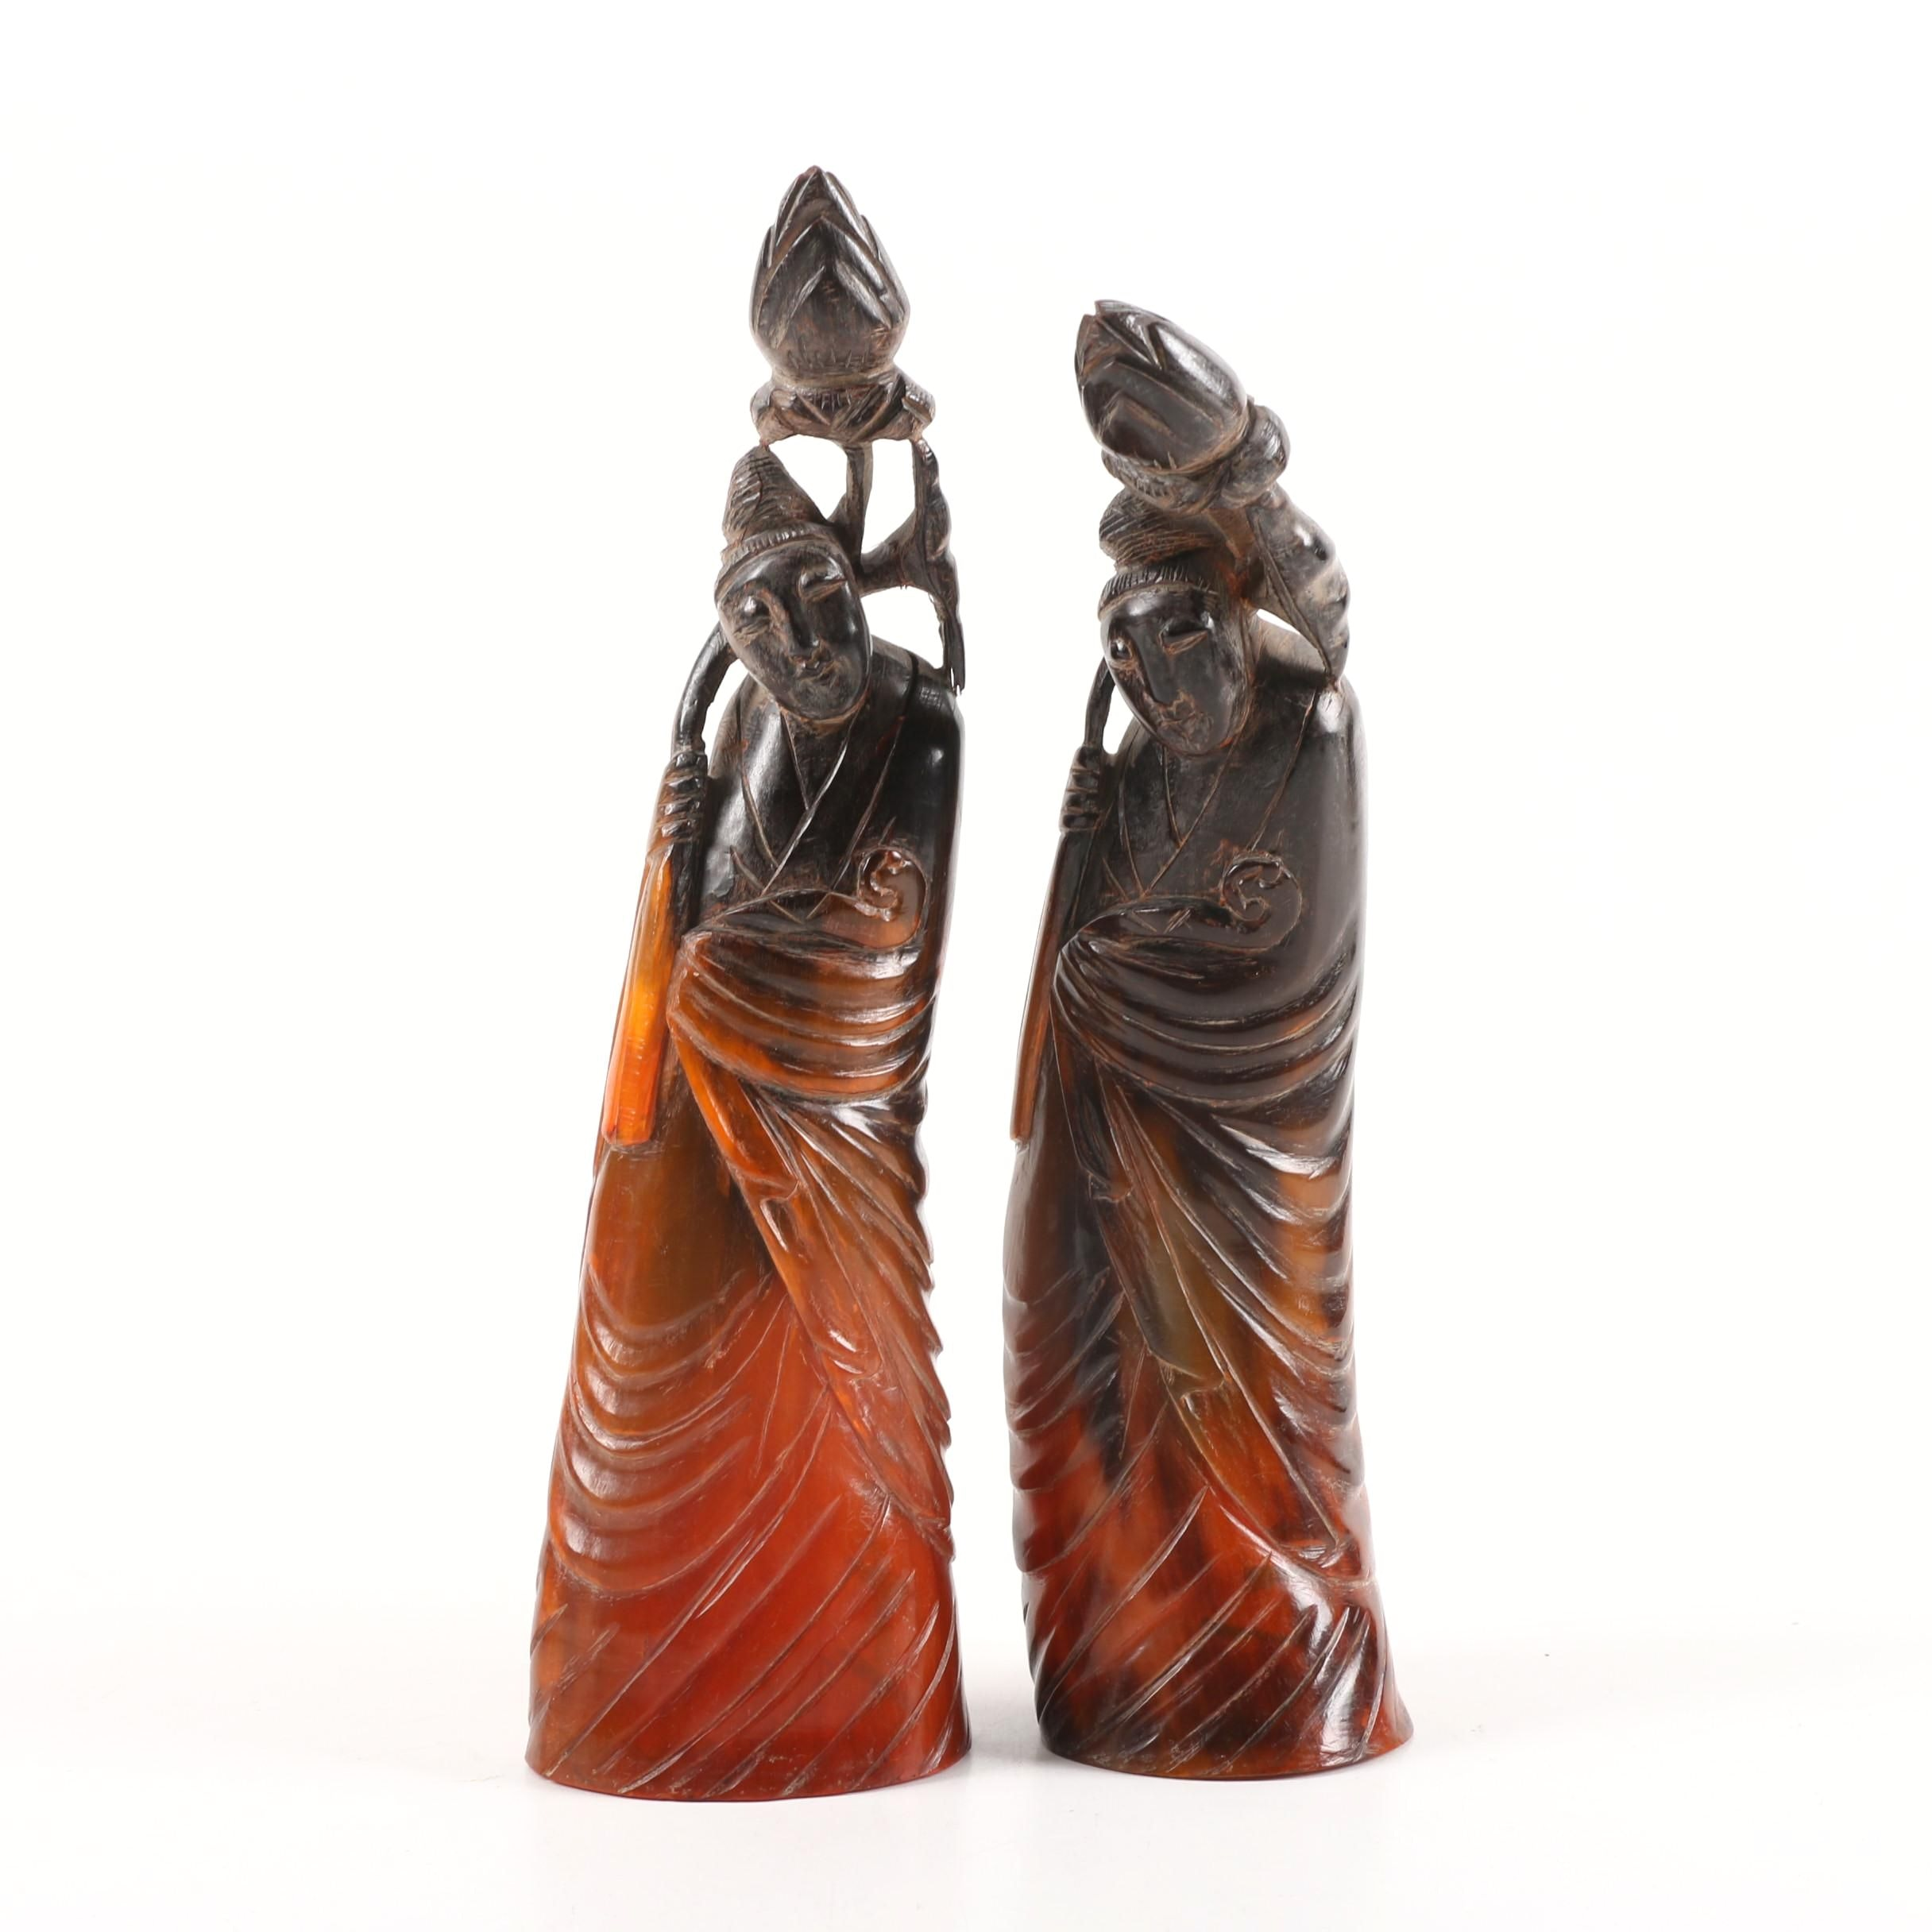 Vintage Chinese Inspired Carved Horn Figures